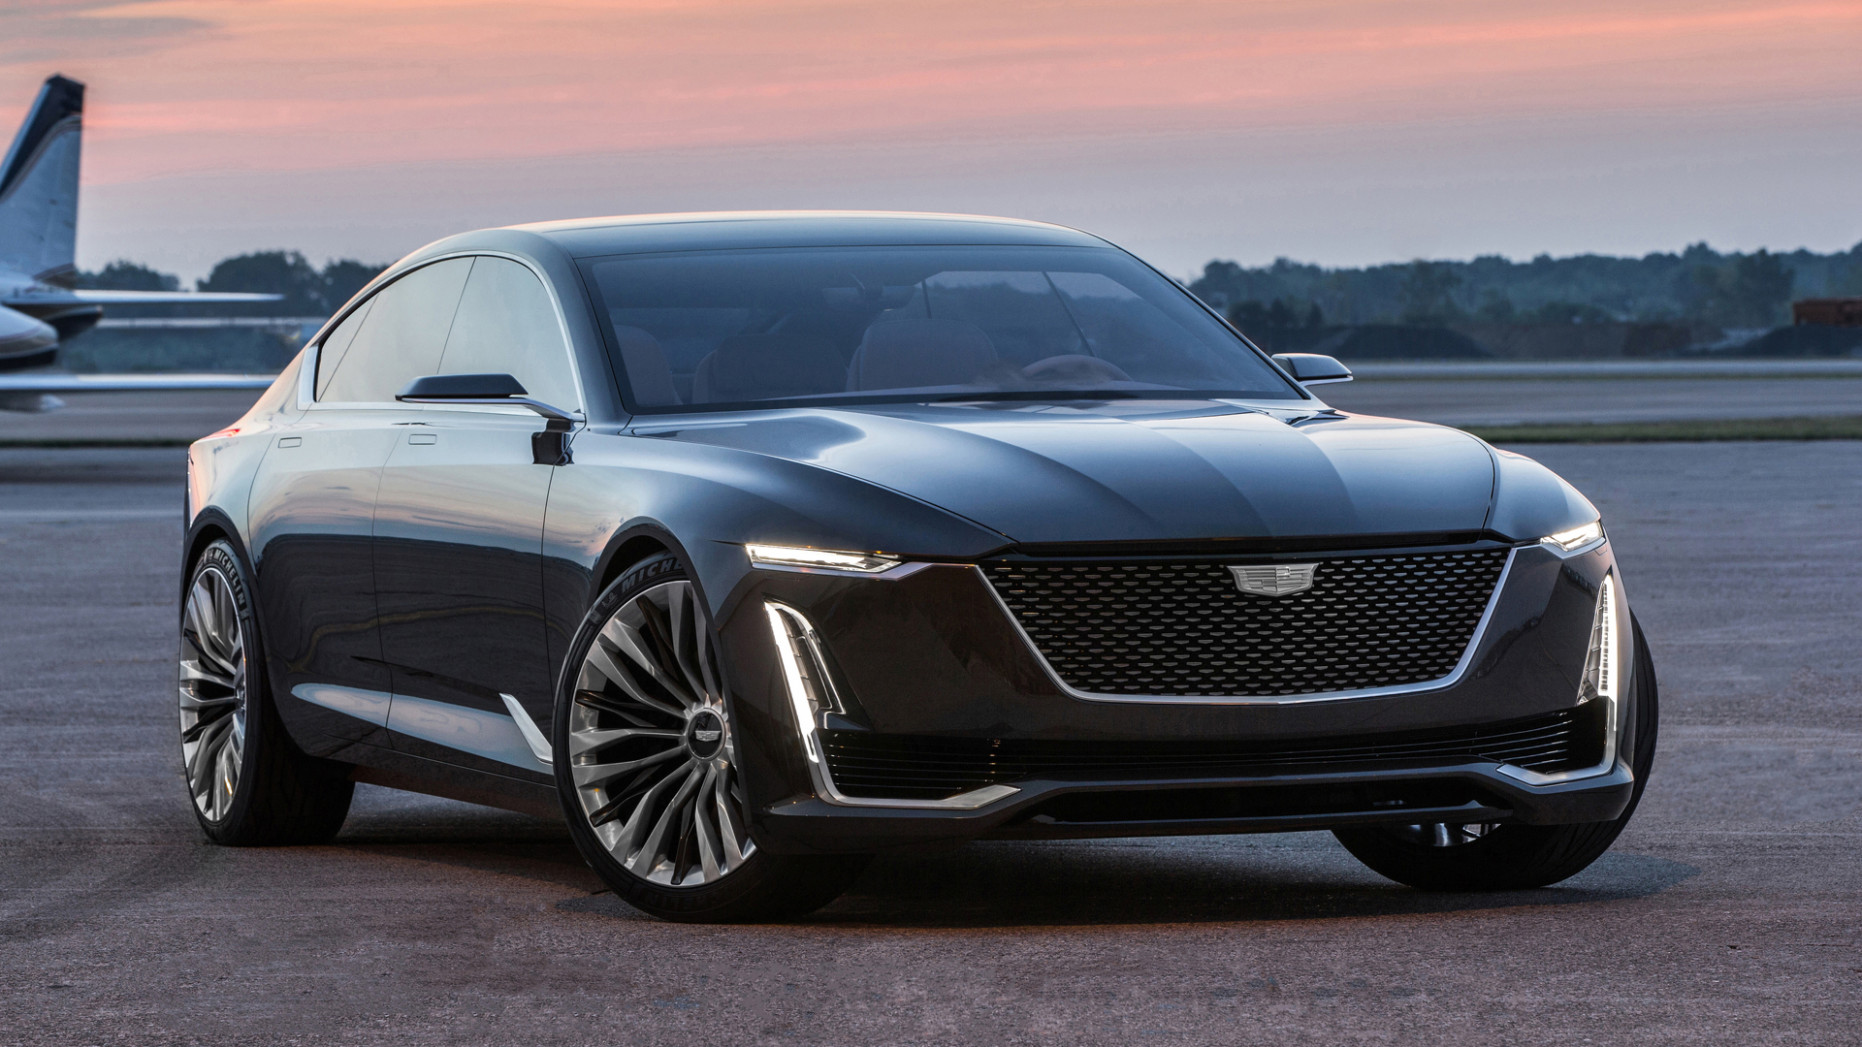 Picture 2022 Candillac Xts